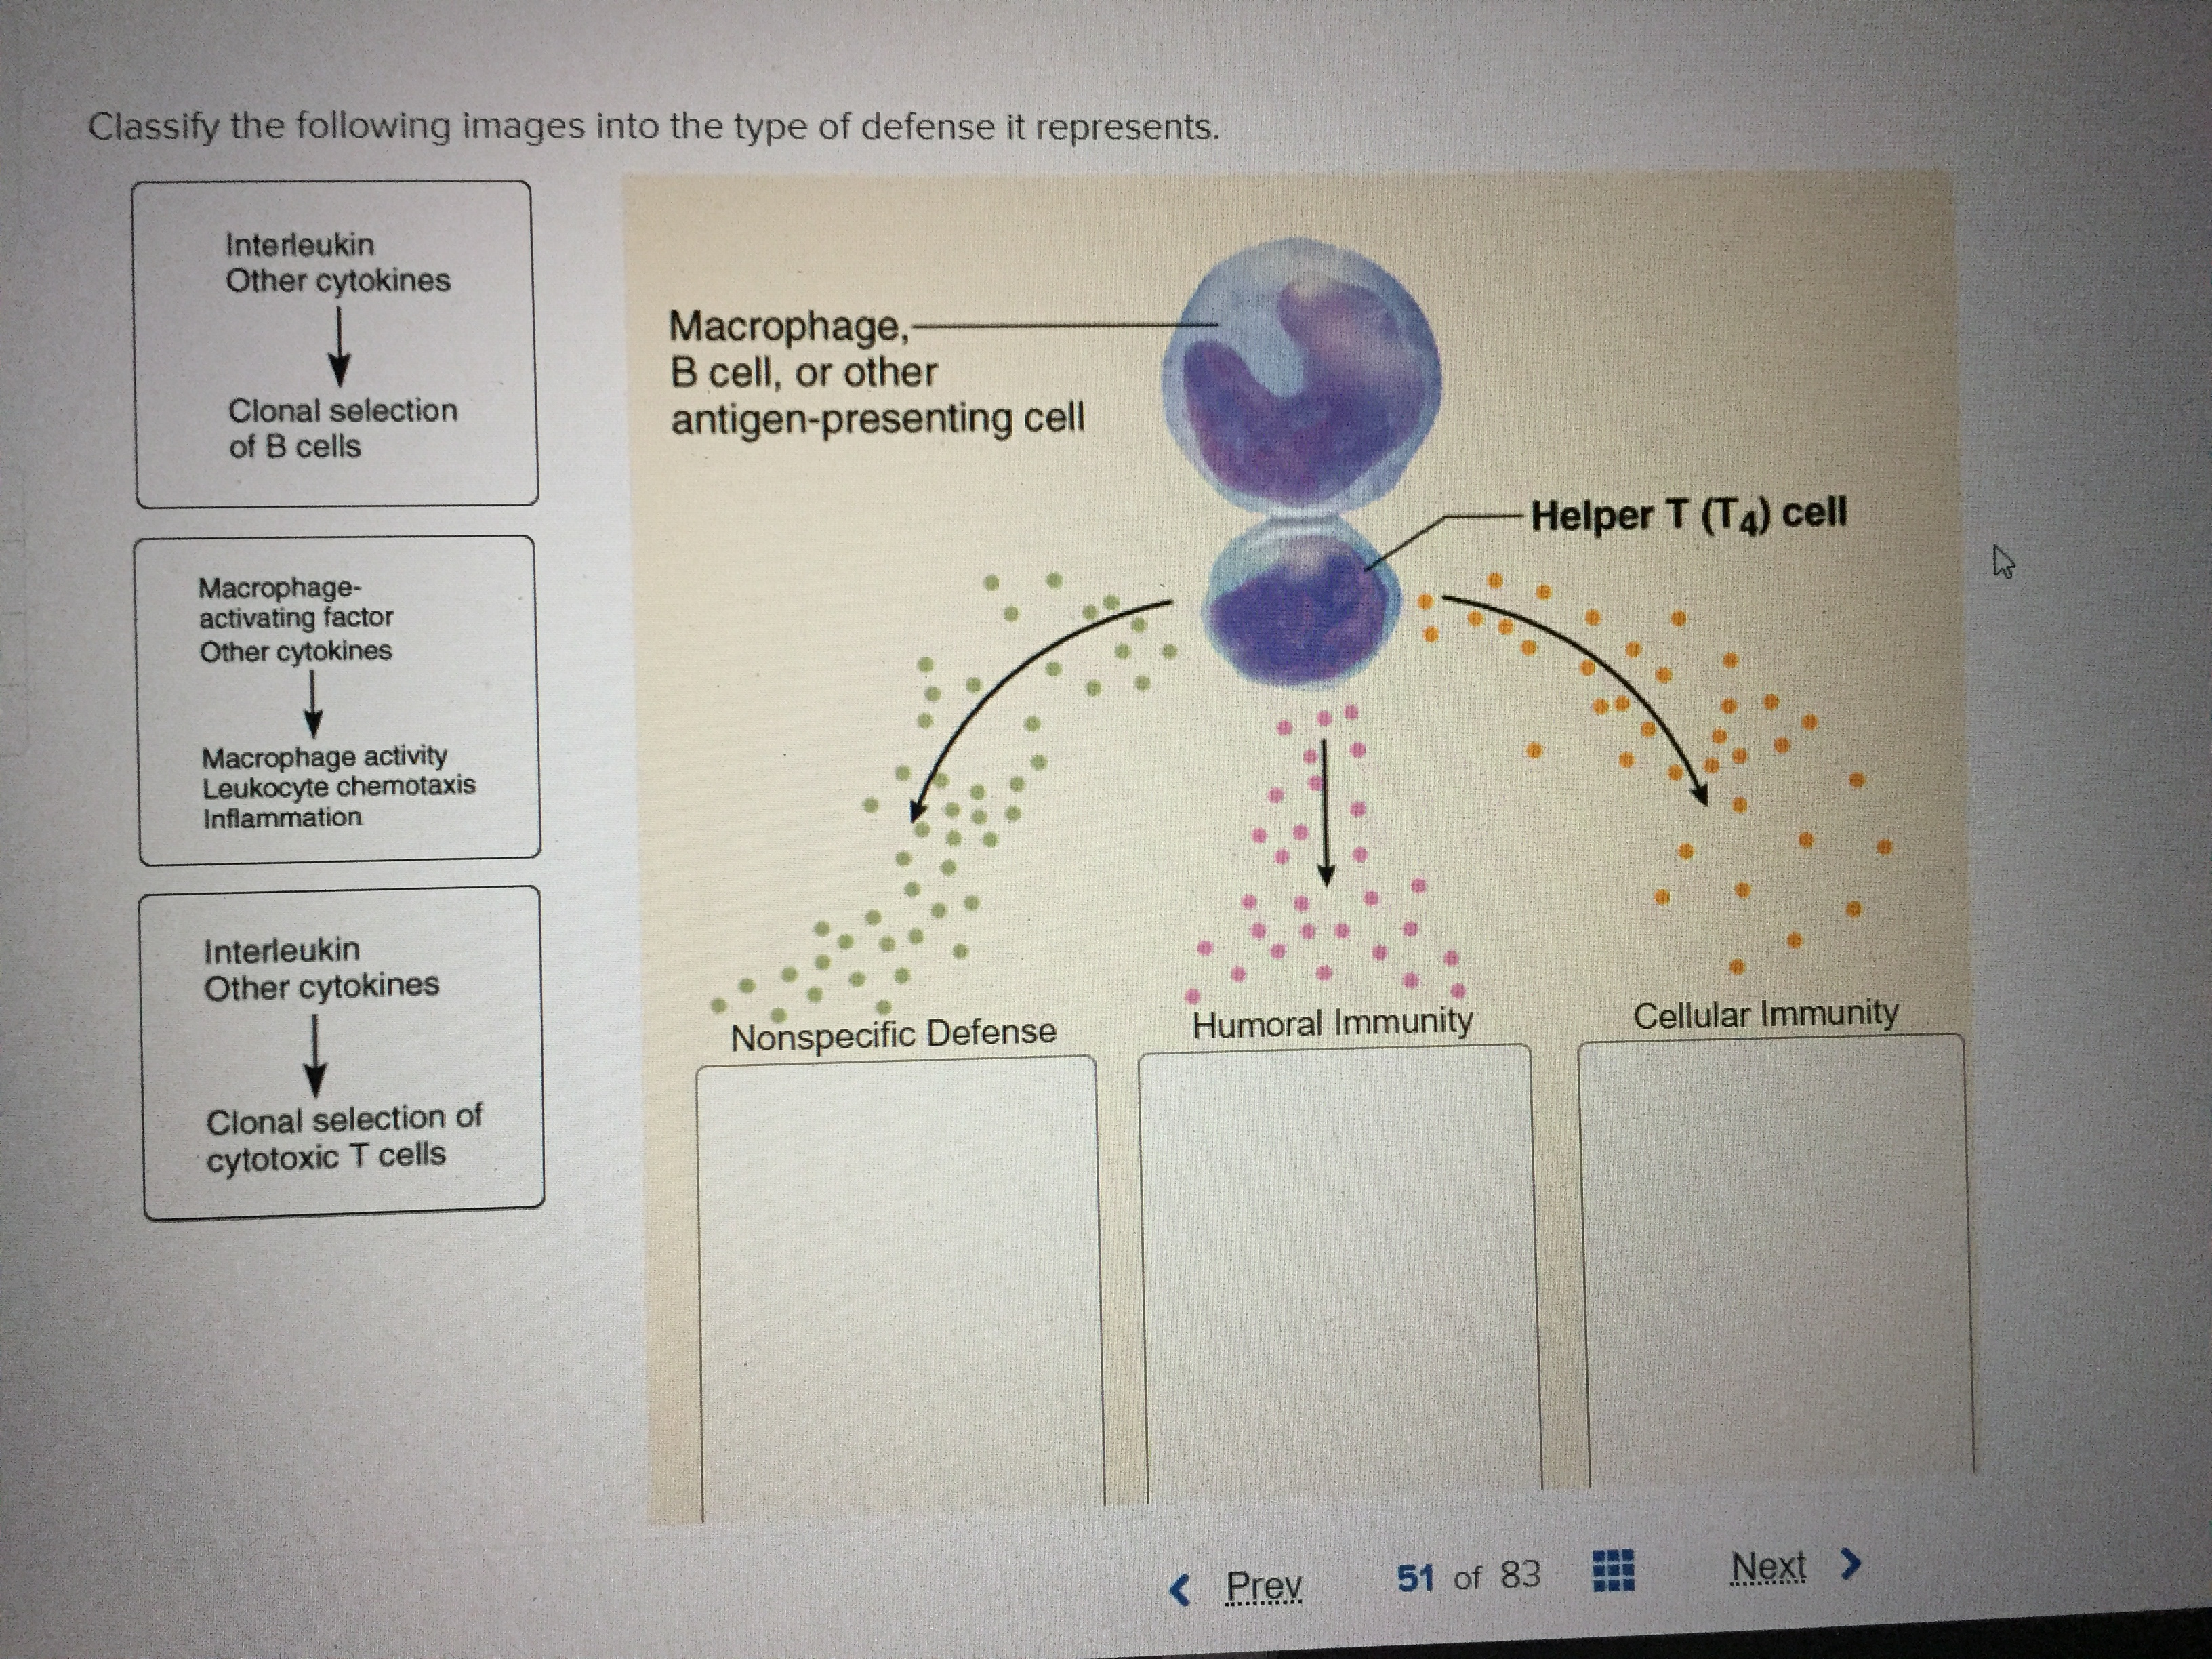 Classify the following images into the type of defense it represents. Interleukin Other cytokines Macrophage, B cell, or other antigen-presenting cell Clonal selection of B cells Helper T (T4) cell Macrophage- activating factor Other cytokines Macrophage activity Leukocyte chemotaxis Inflammation Interleukin Other cytokines Cellular Immunity Humoral Immunity Nonspecific Defense Clonal selection of cytotoxic T cells Next> 51 of 83 Prev